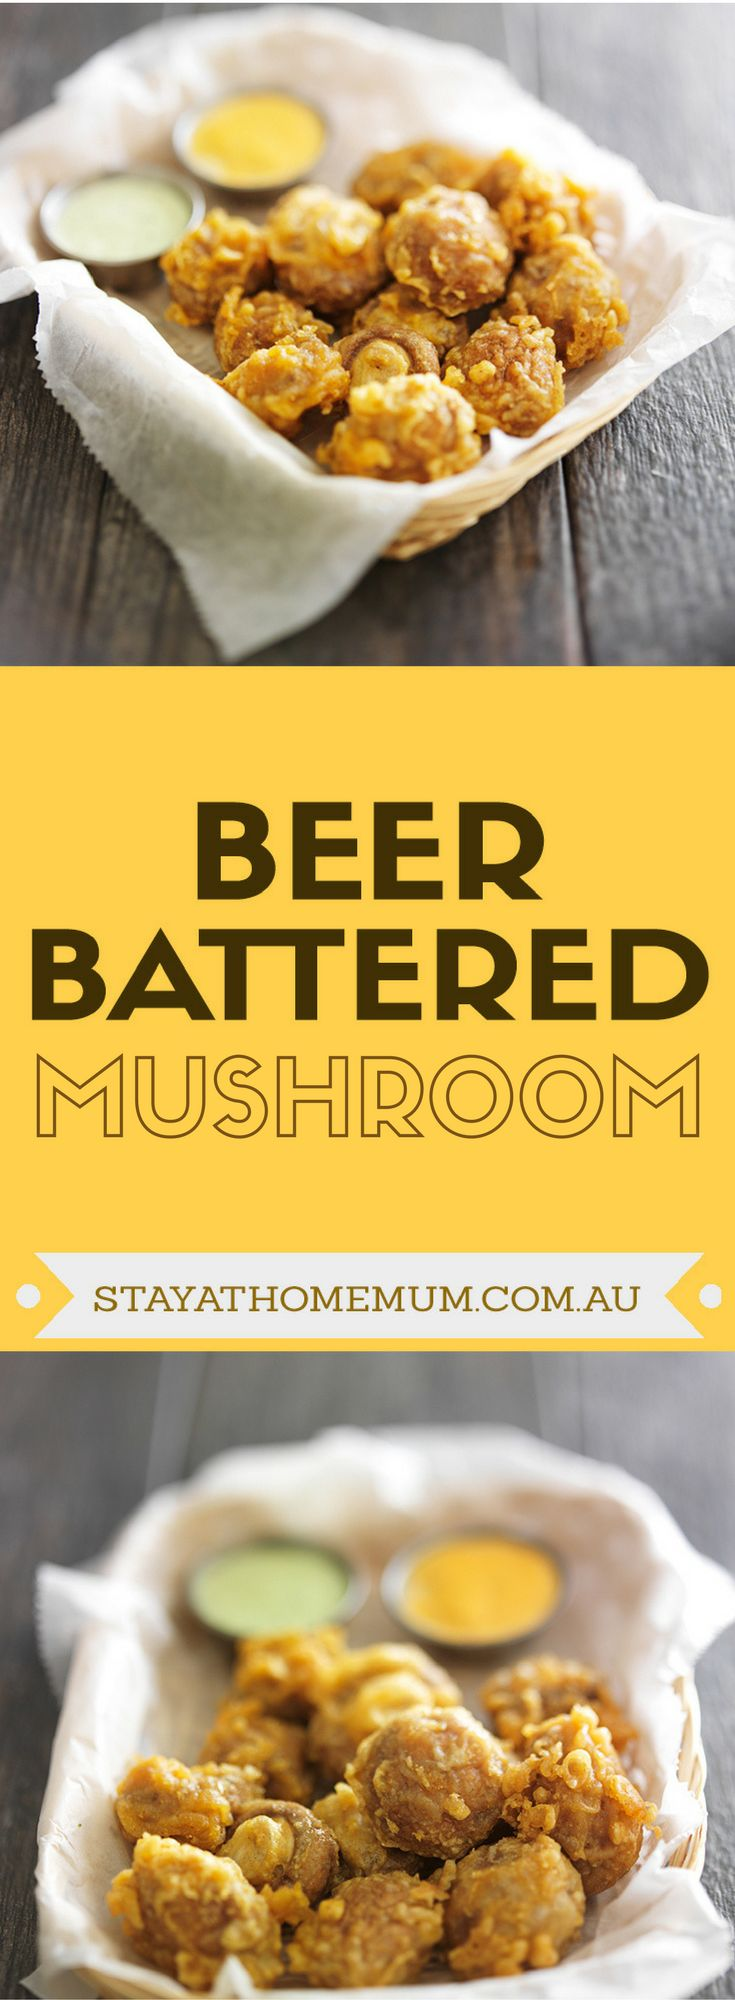 They're mushrooms like you've never eaten them before, and are sure to be a regular appetiser at parties and gatherings in the future, for mushroom lovers and those on the fence.